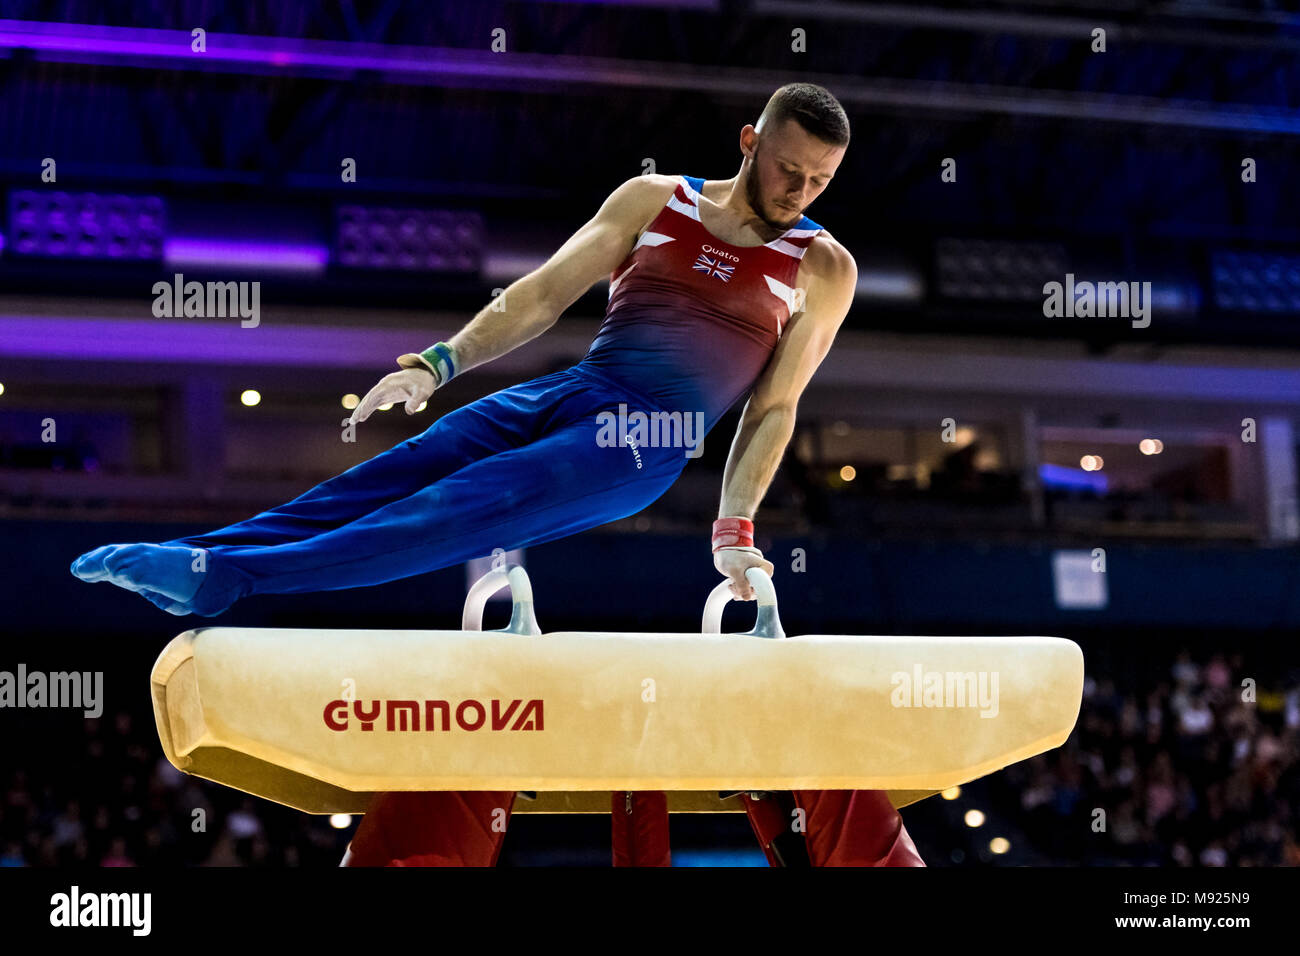 Birmingham, UK. 21st March, 2018. Dominick Gunnigham (GBR) competes on the Pommel Horse  during the 2018 FIG Gymnastics World Cup at Arena Birmingham on Wednesday, 21 March 2018. Birmingham England. Credit: Taka Wu/Alamy Live News - Stock Image